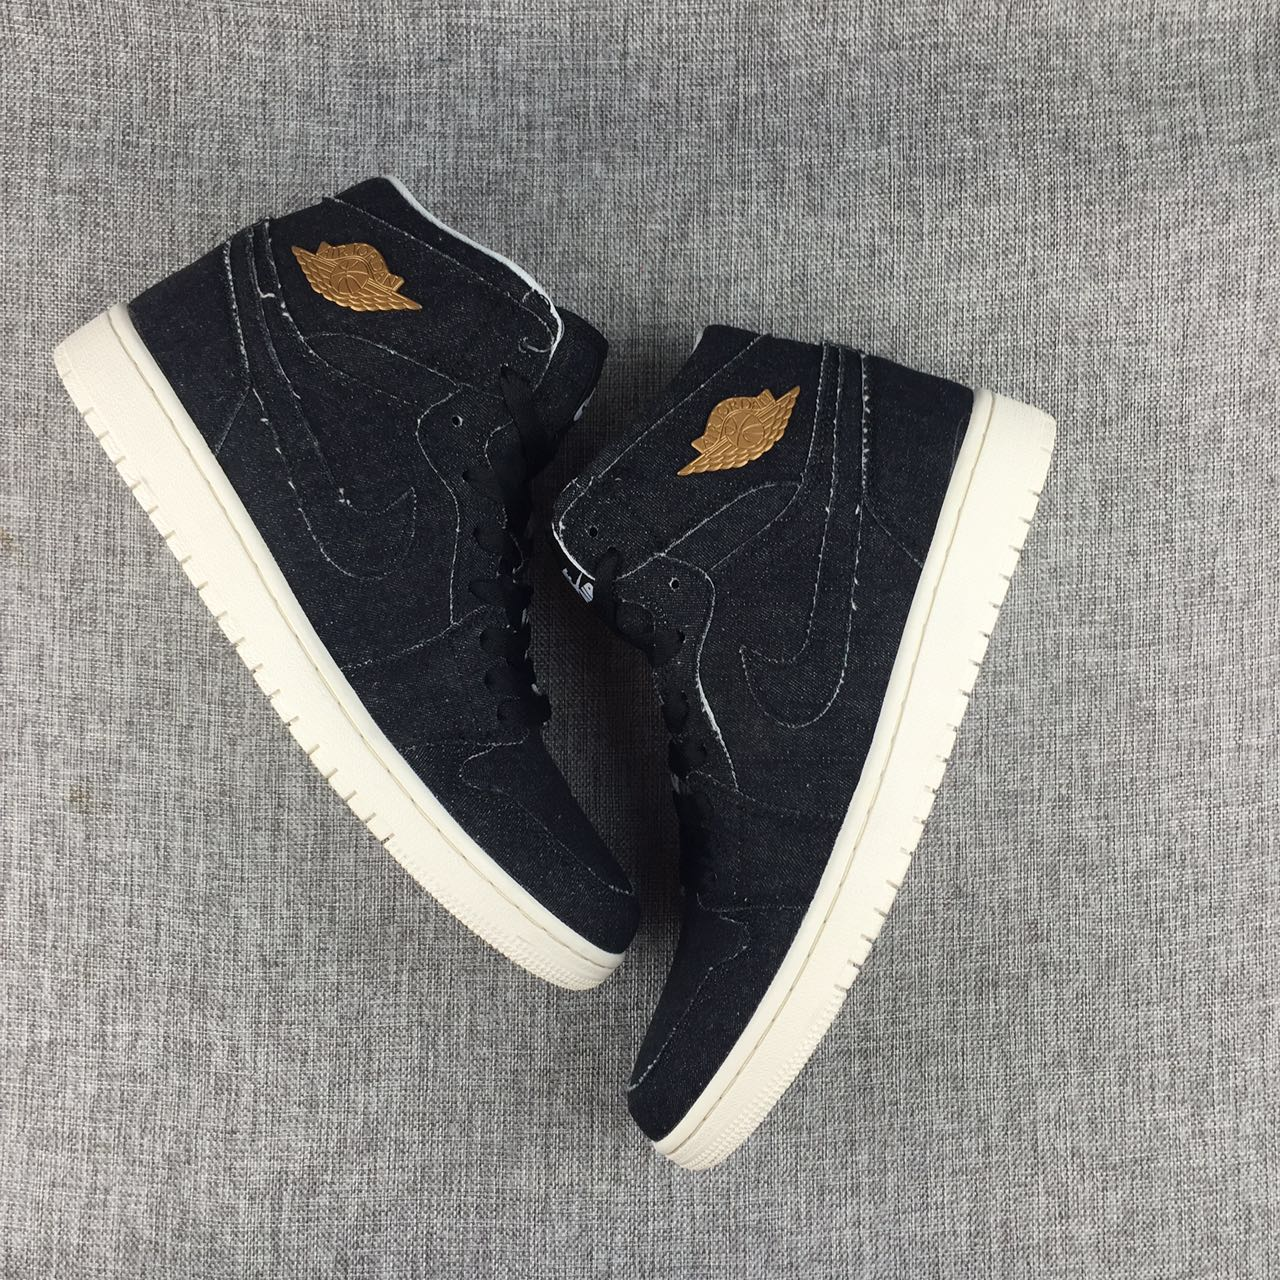 New Air Jordan 1 Tannin Black Gold Shoes